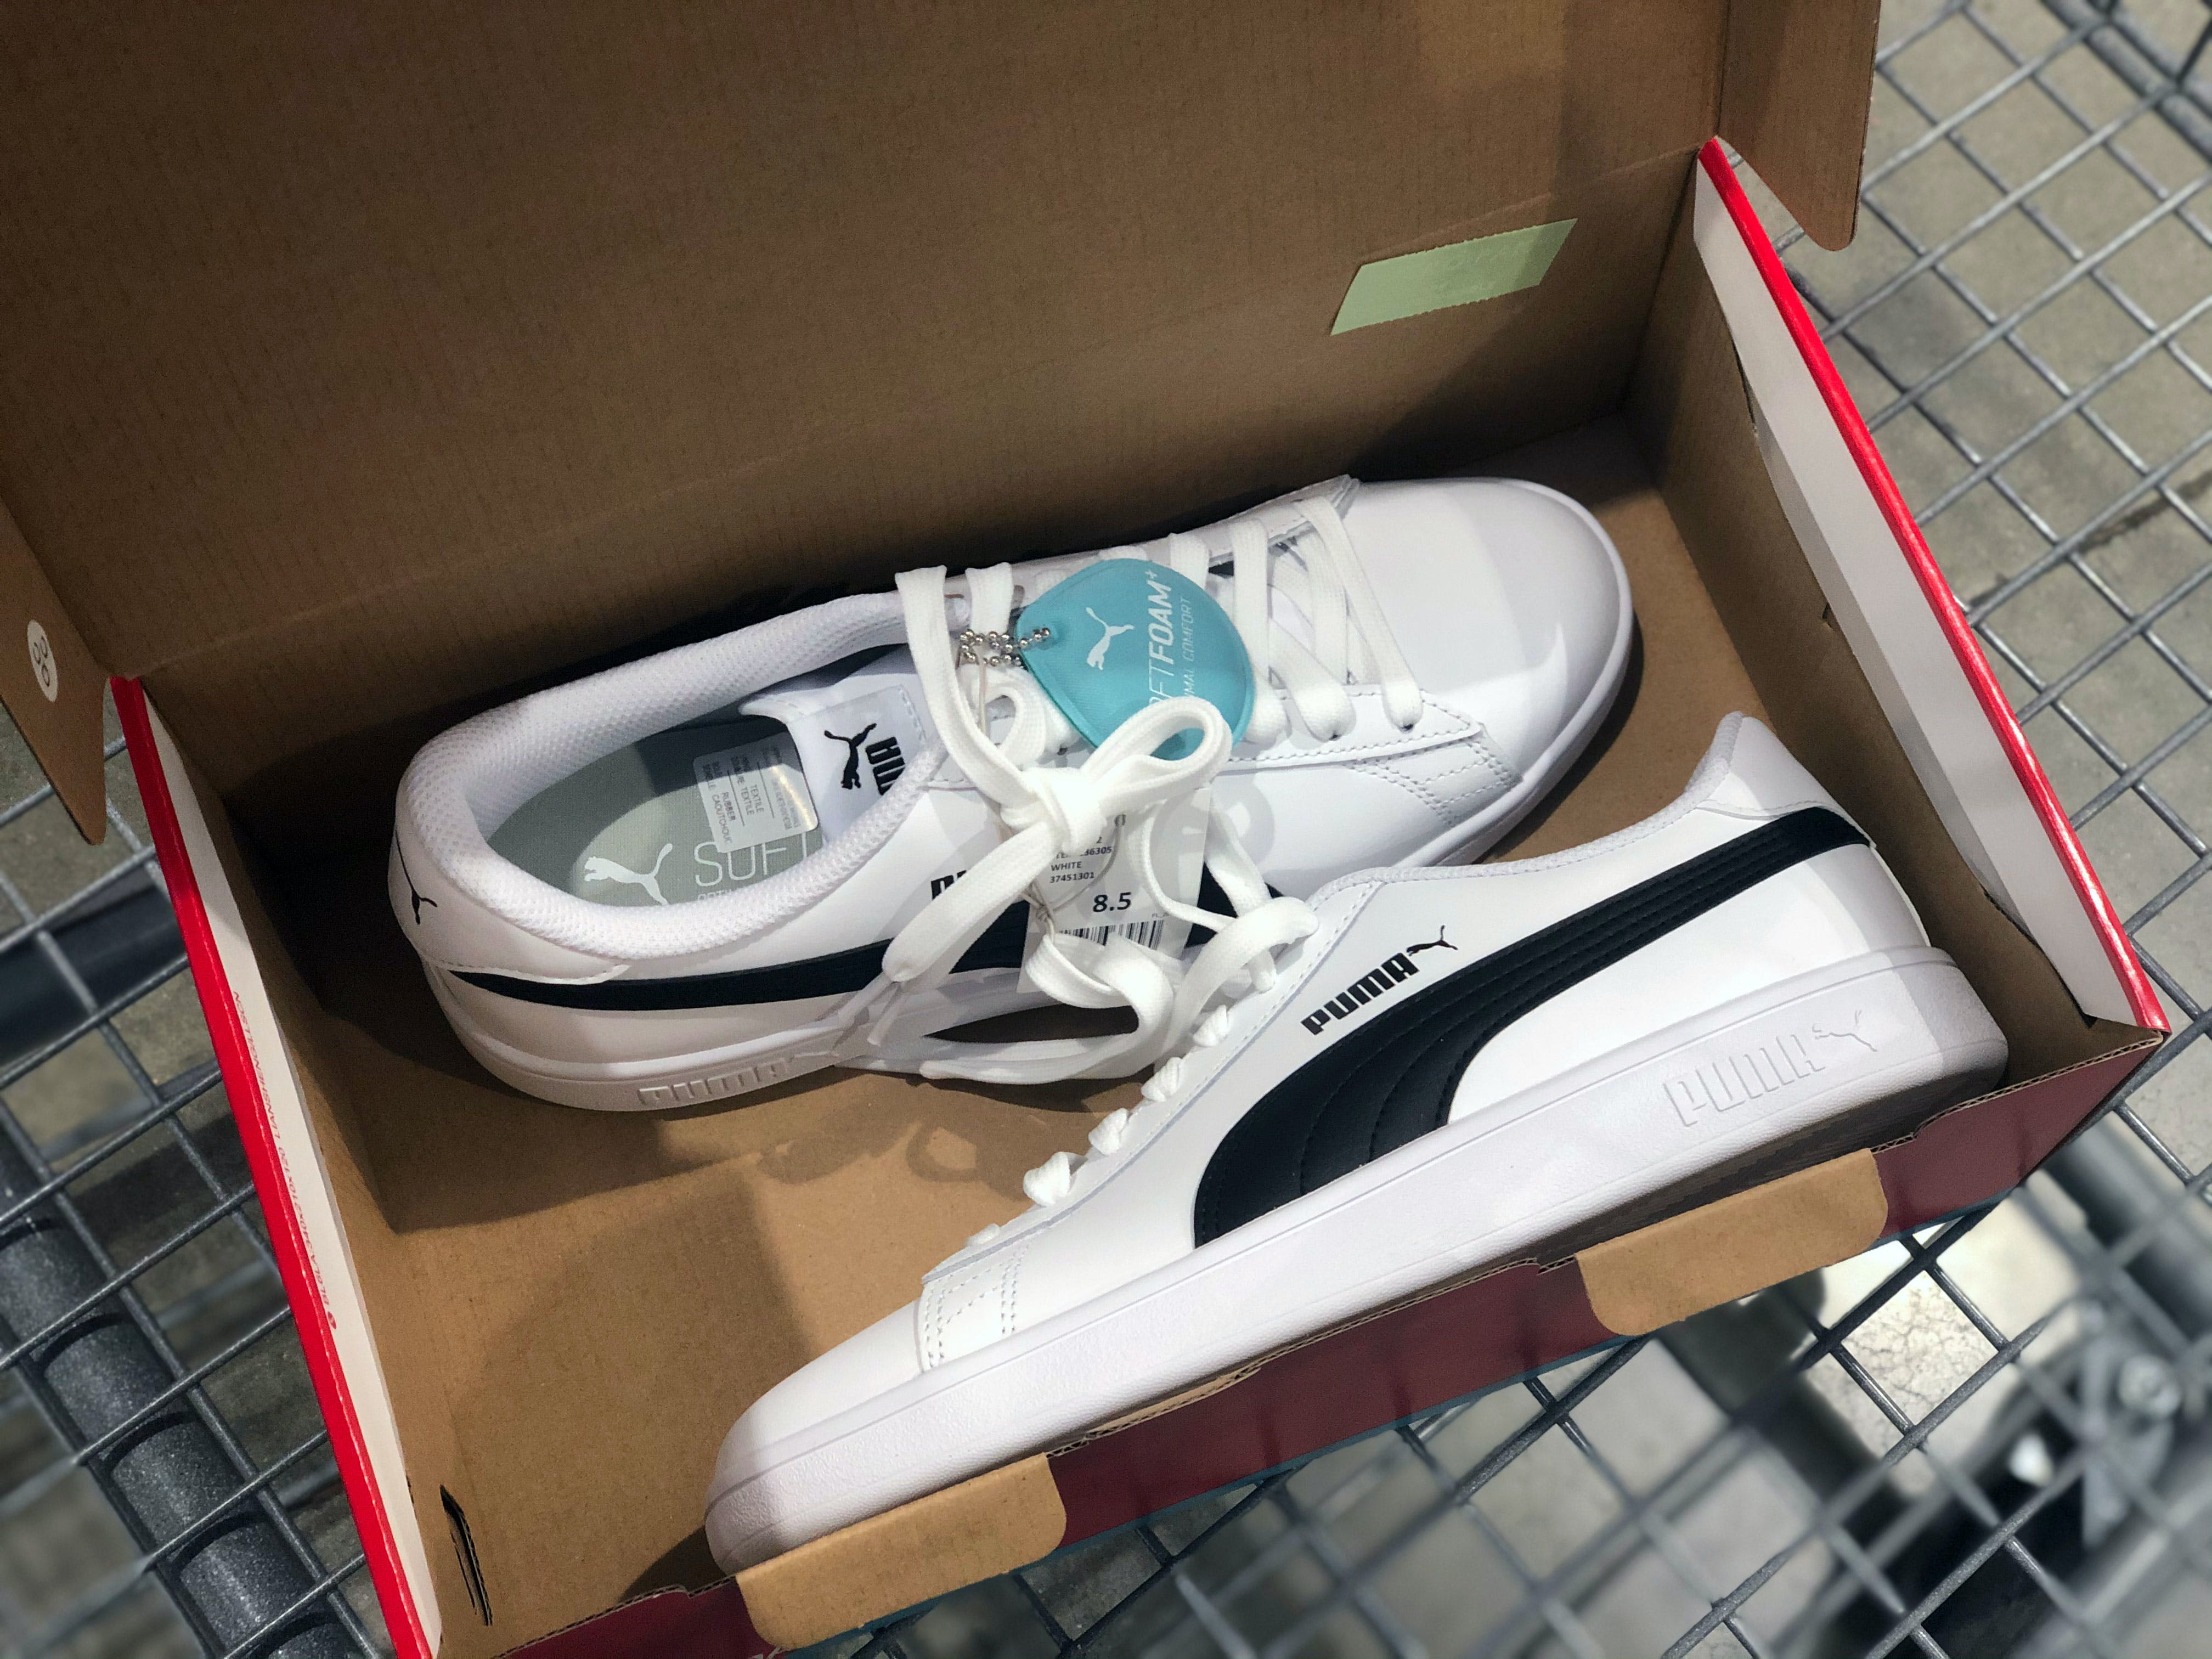 PUMA Leather Shoes, Only $23 at Costco - $60 Value - The ...